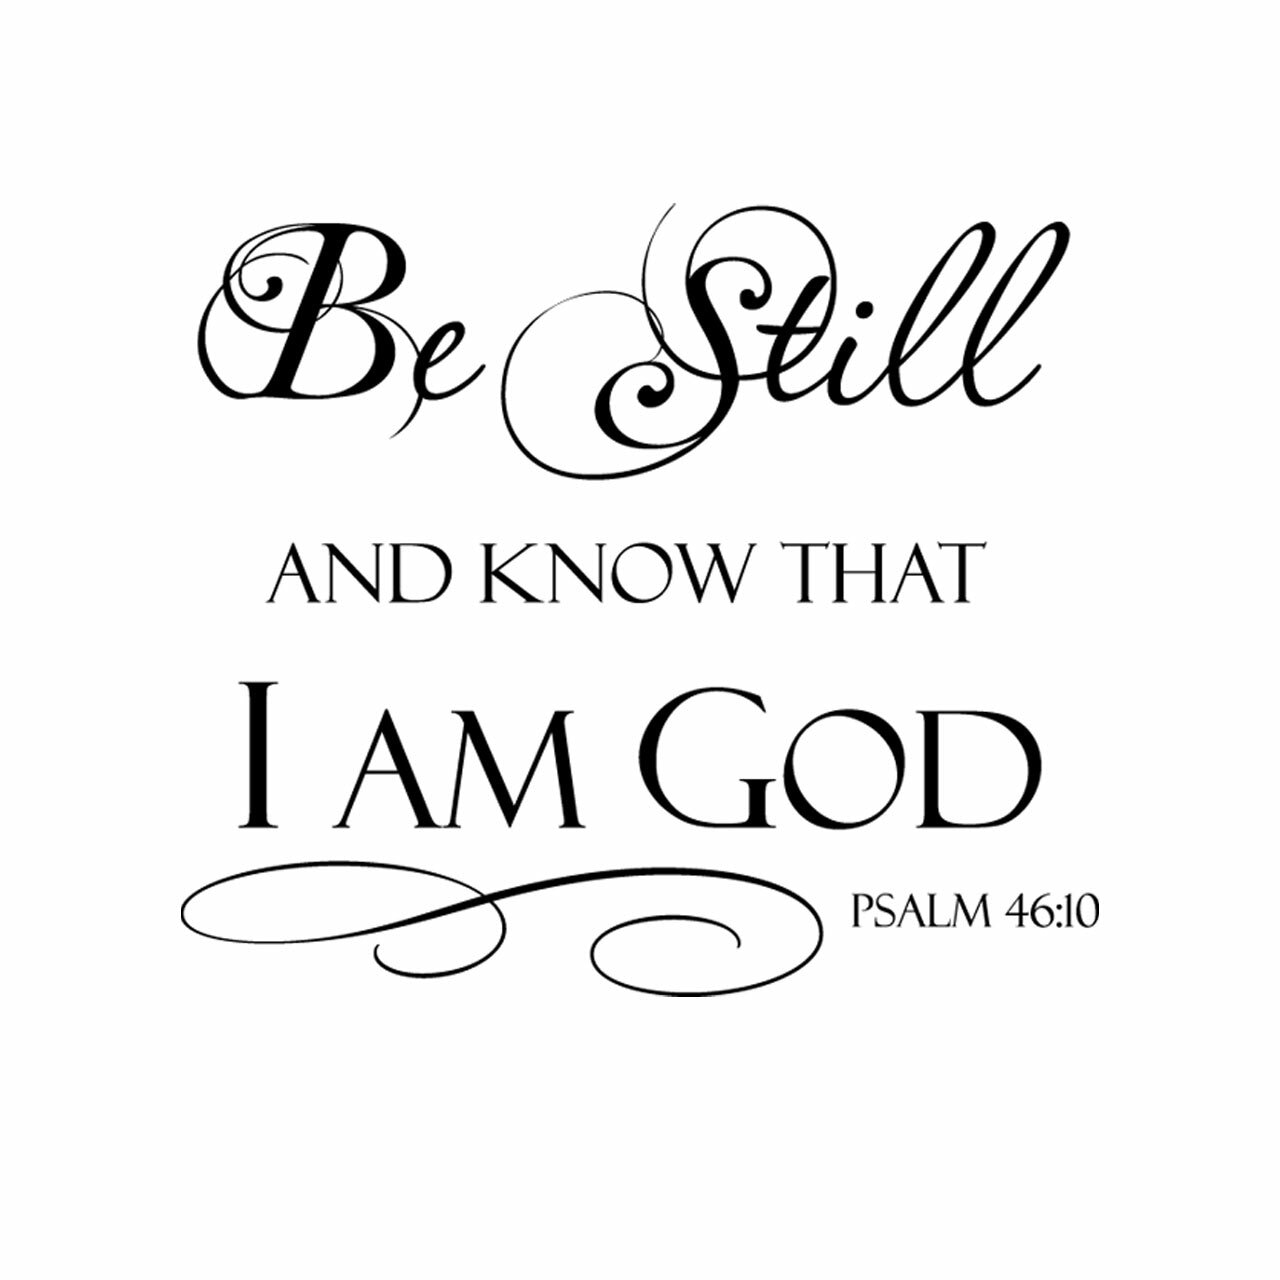 Be still and know that i am god vinyl lettering in black on a white background